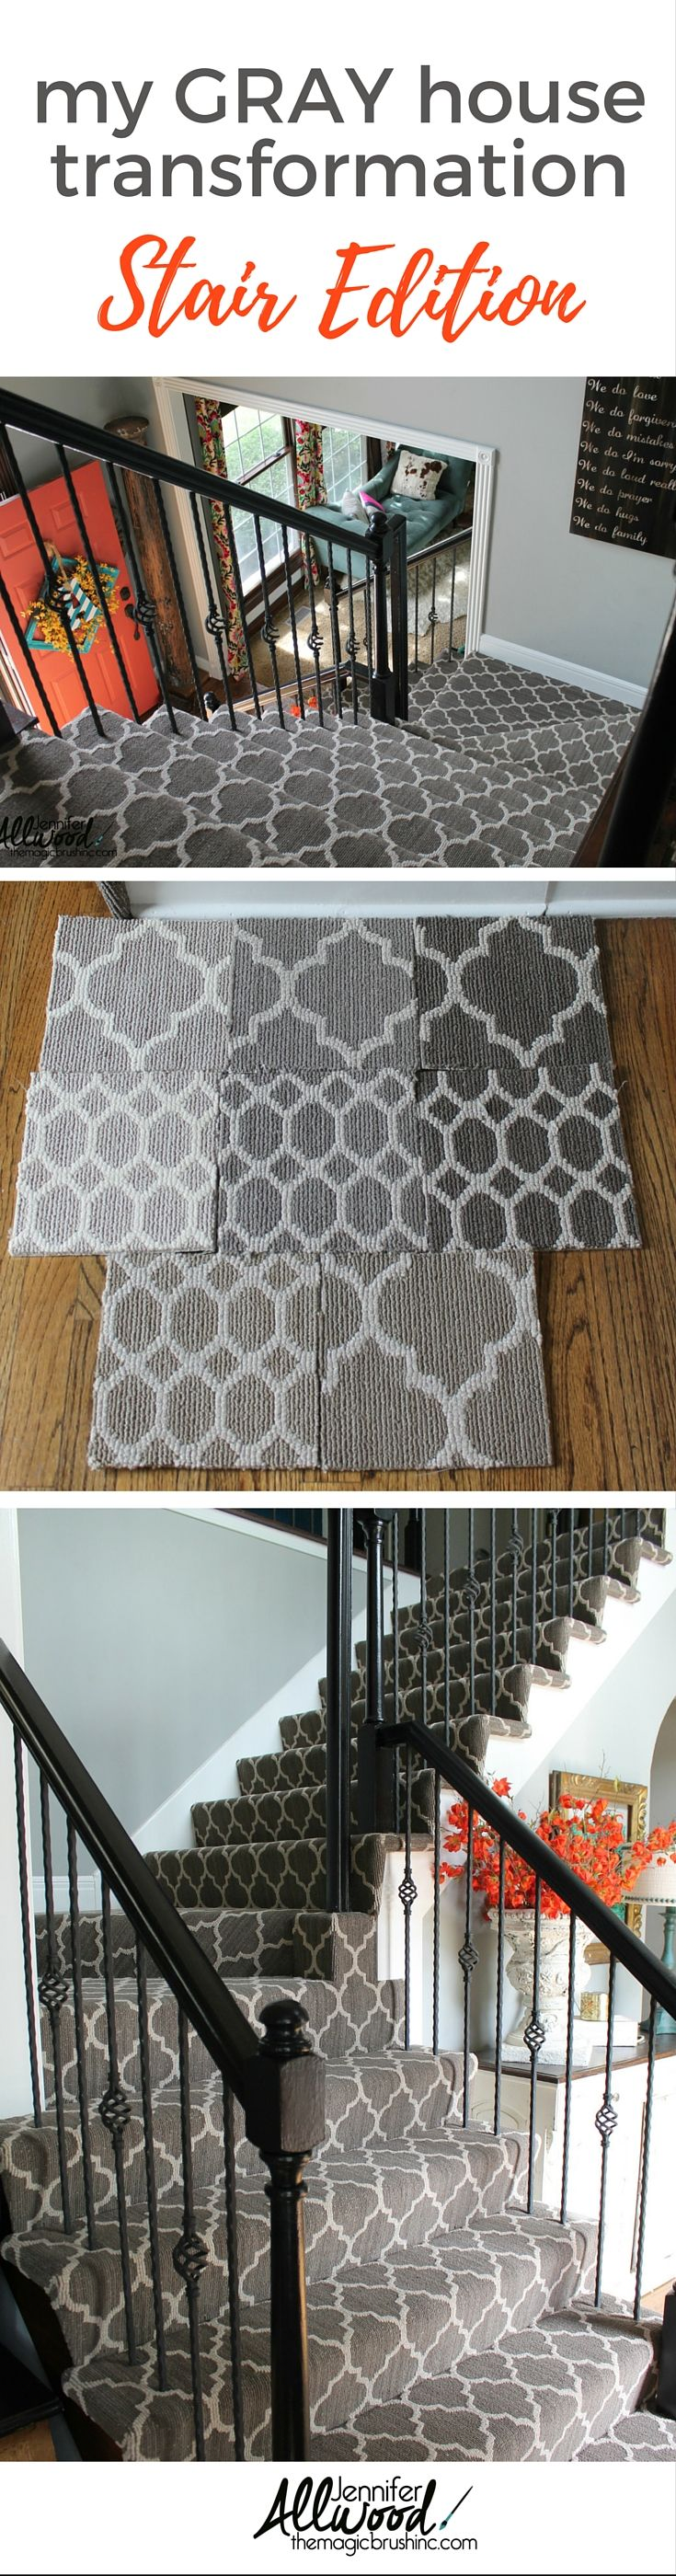 Staircase Idea. Here's my gray patterned stair carpet makeover. I chose a modern gray arabesque to replace the brown gold carpet. More DIY home projects, paintings tips and design advice at theMagicBrushinc.com